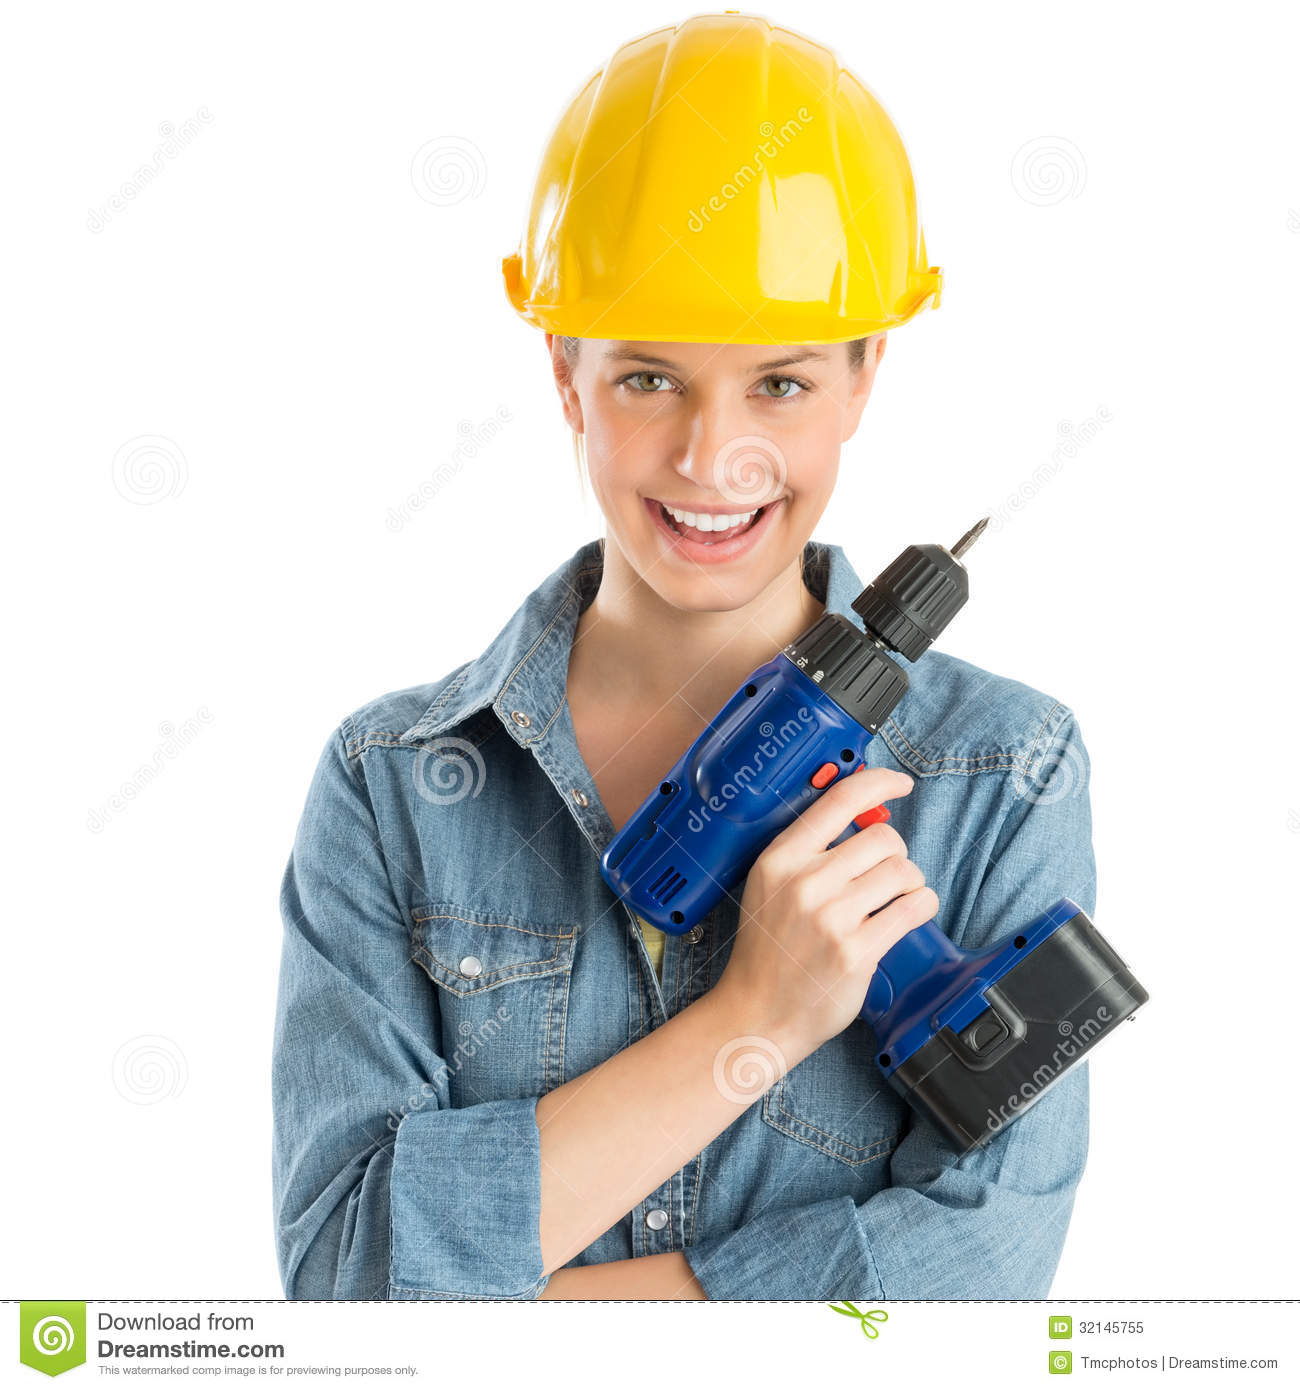 Female Construction Worker Wearing Helmet While Holding ...